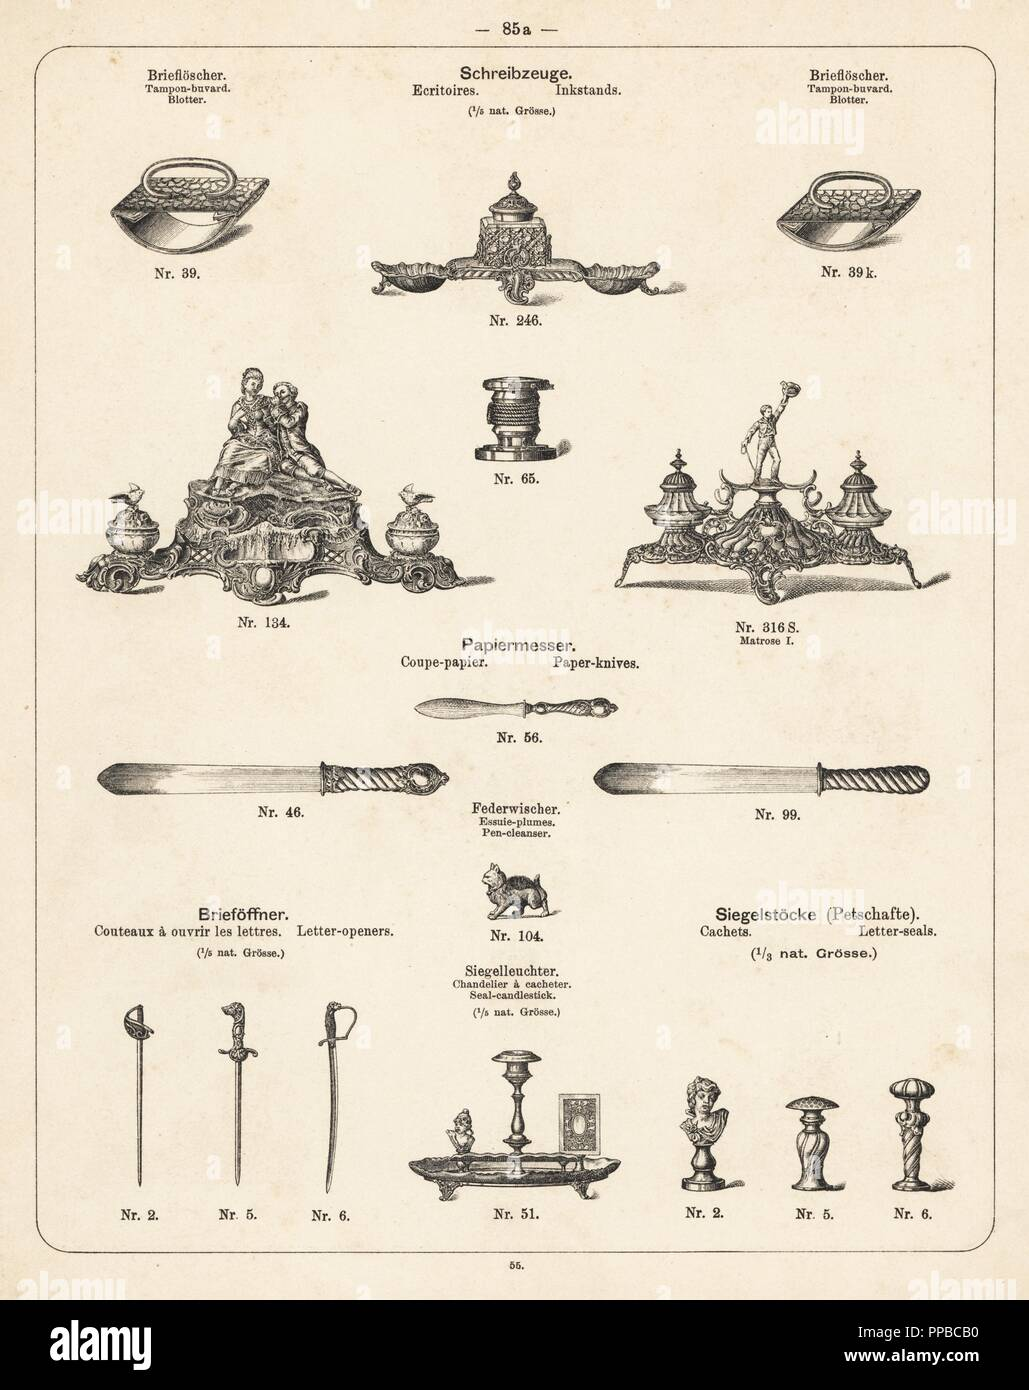 Inkstand, blotter, paper knife and letter opener. Lithograph from a catalog of metal products manufactured by Wuerttemberg Metalware Factory, Geislingen, Germany, 1896. - Stock Image